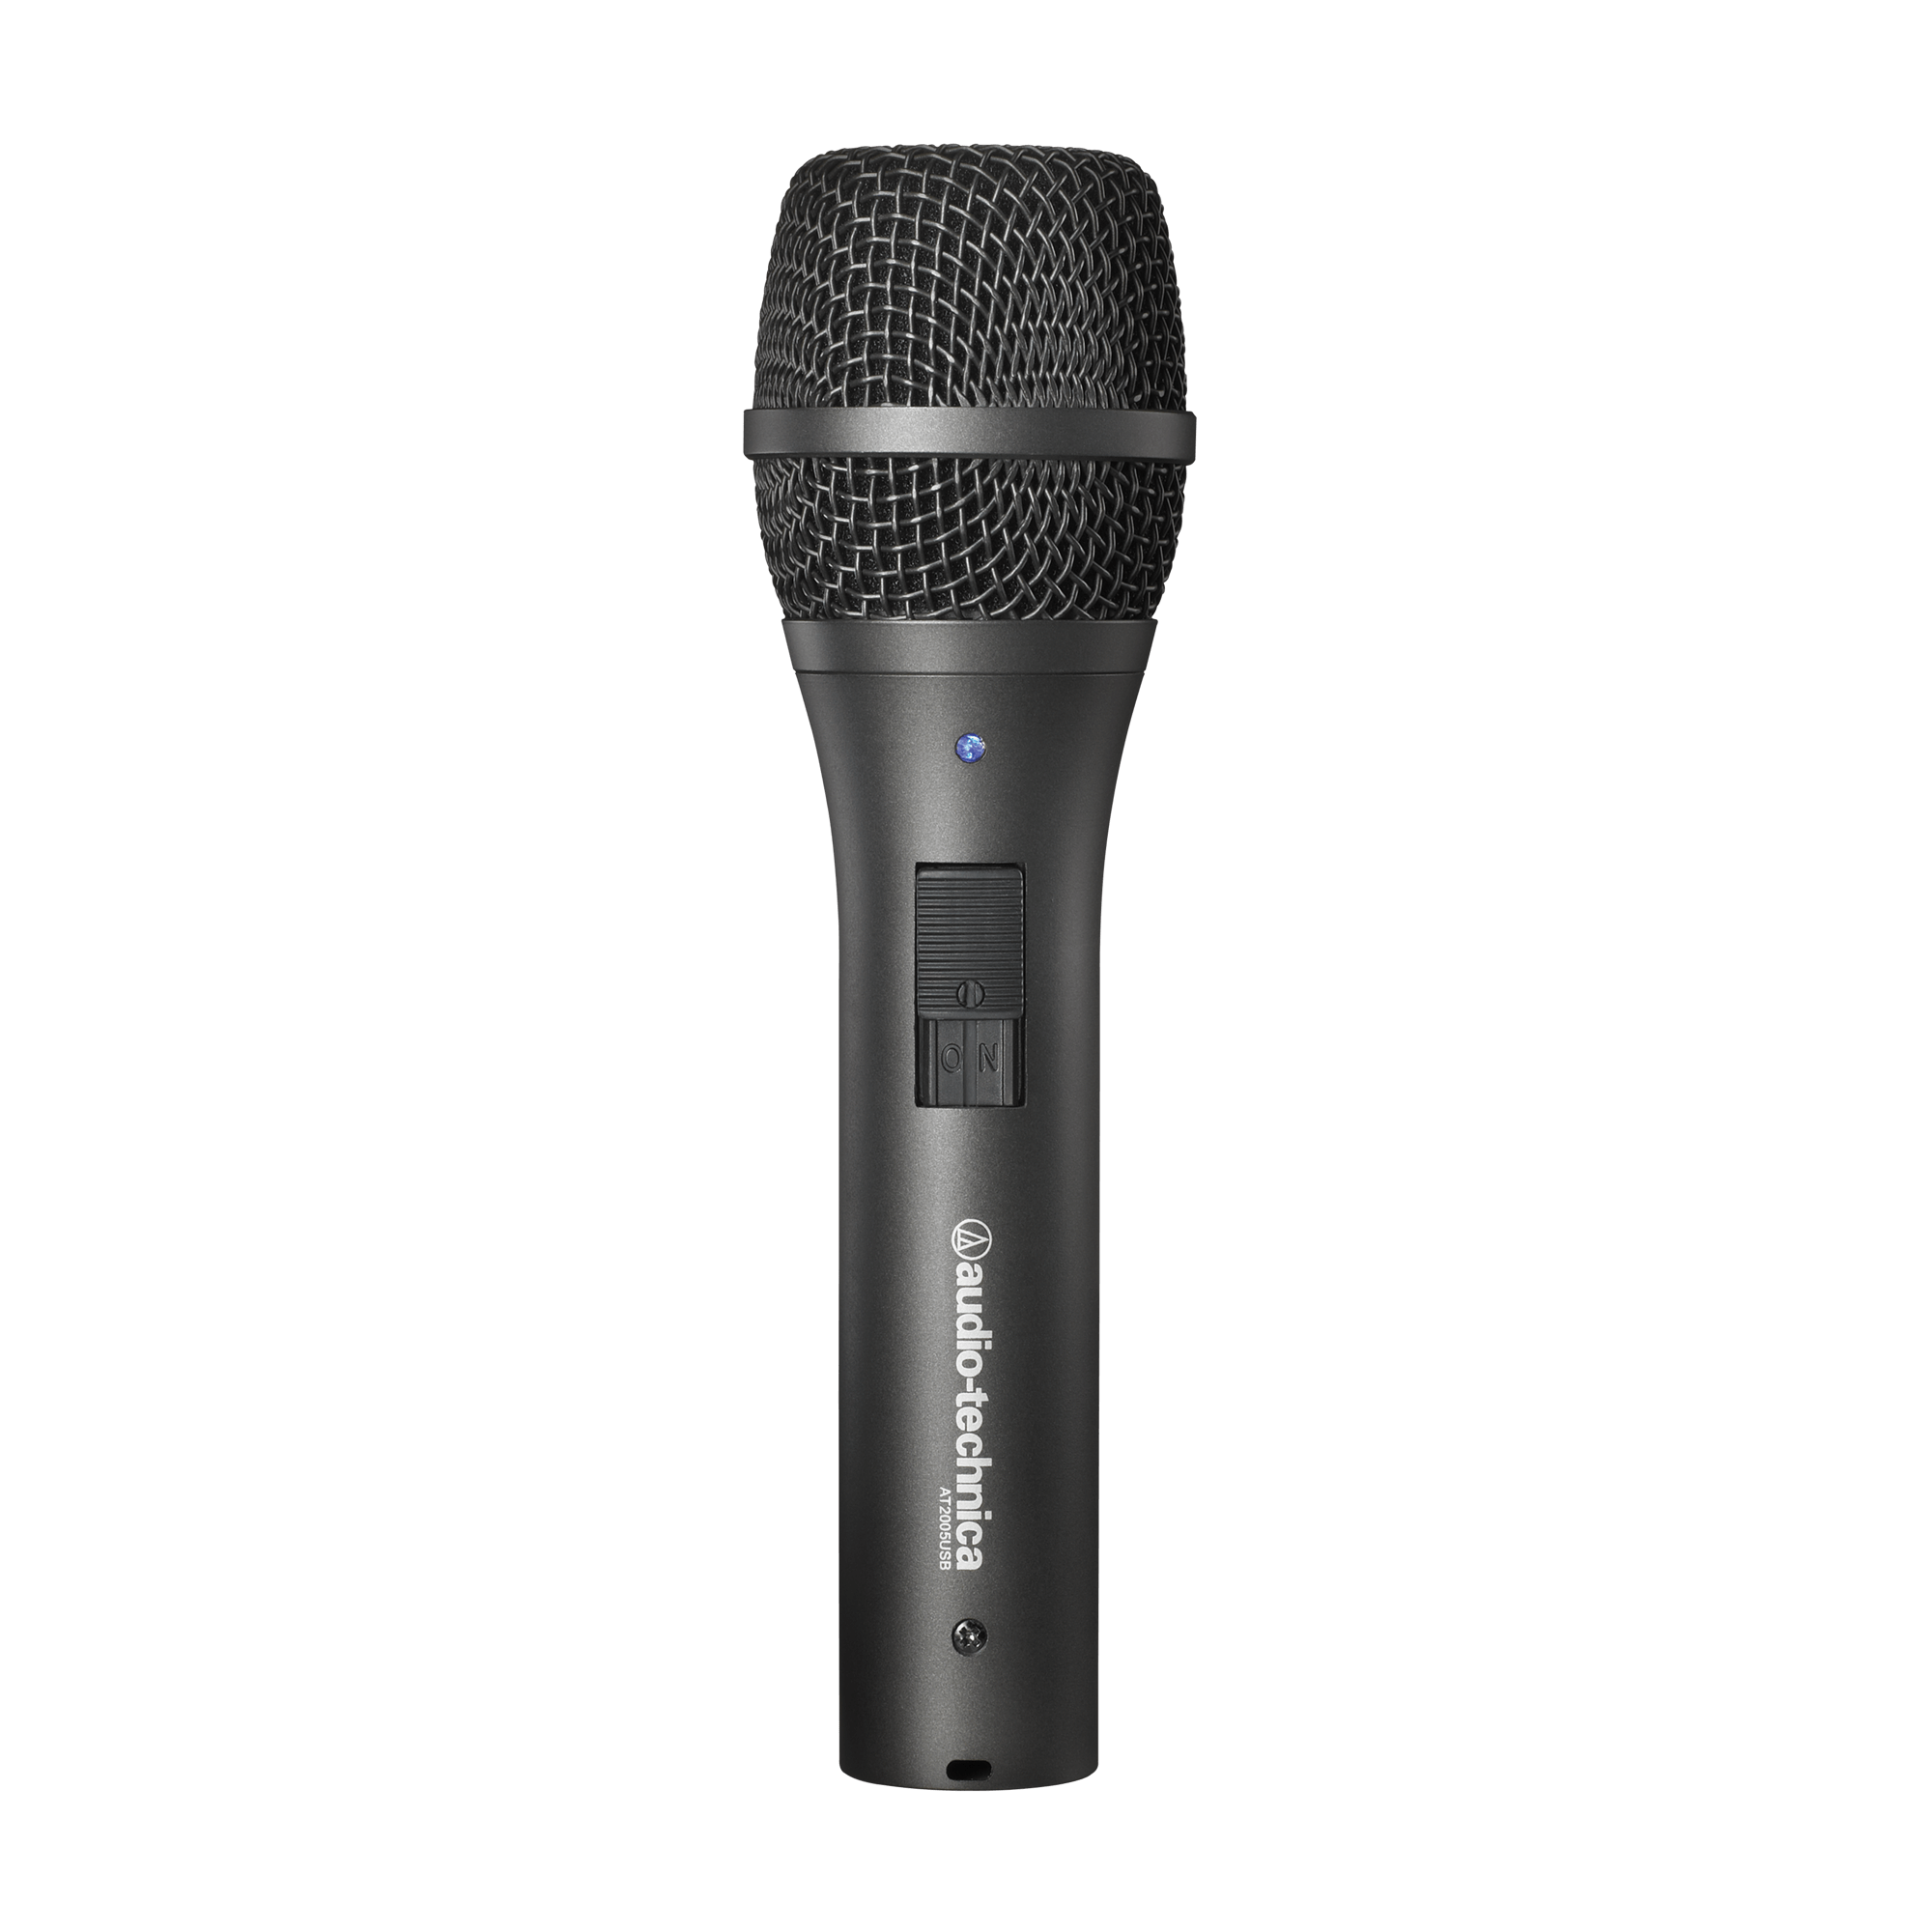 Audio Technica AT2005USB Dynamic Wired Microphone for Recording and Podcasting